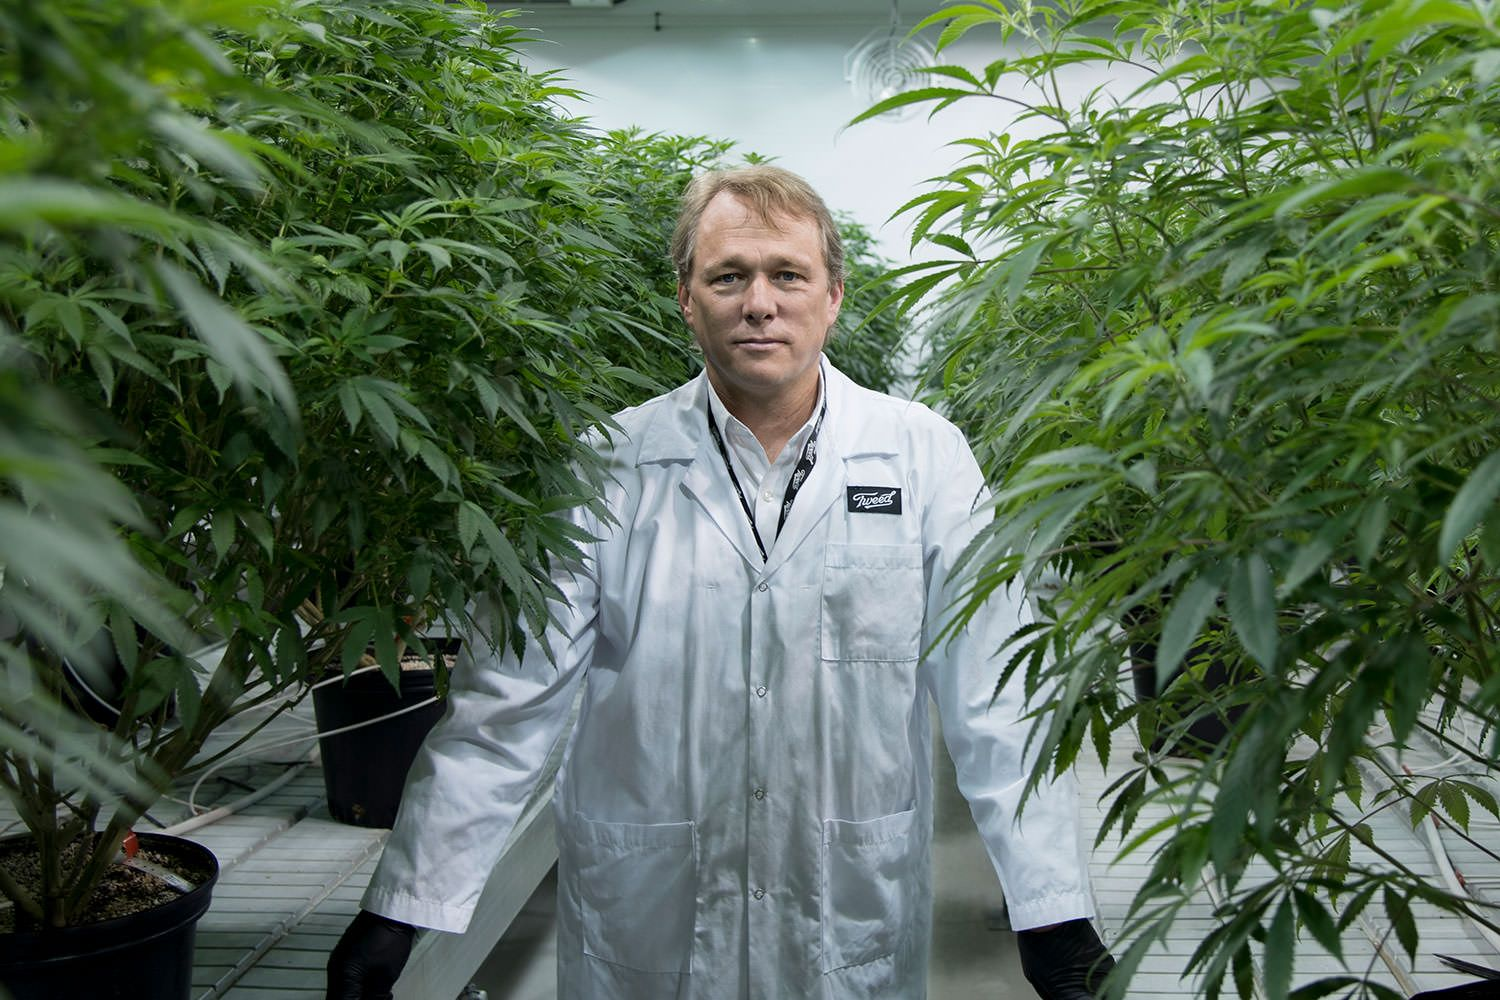 Constellation Brands Canopy Growth, Constellation invests CA$5 billion in cannabis giant Canopy in deal financed by BofA Merrill Lynch